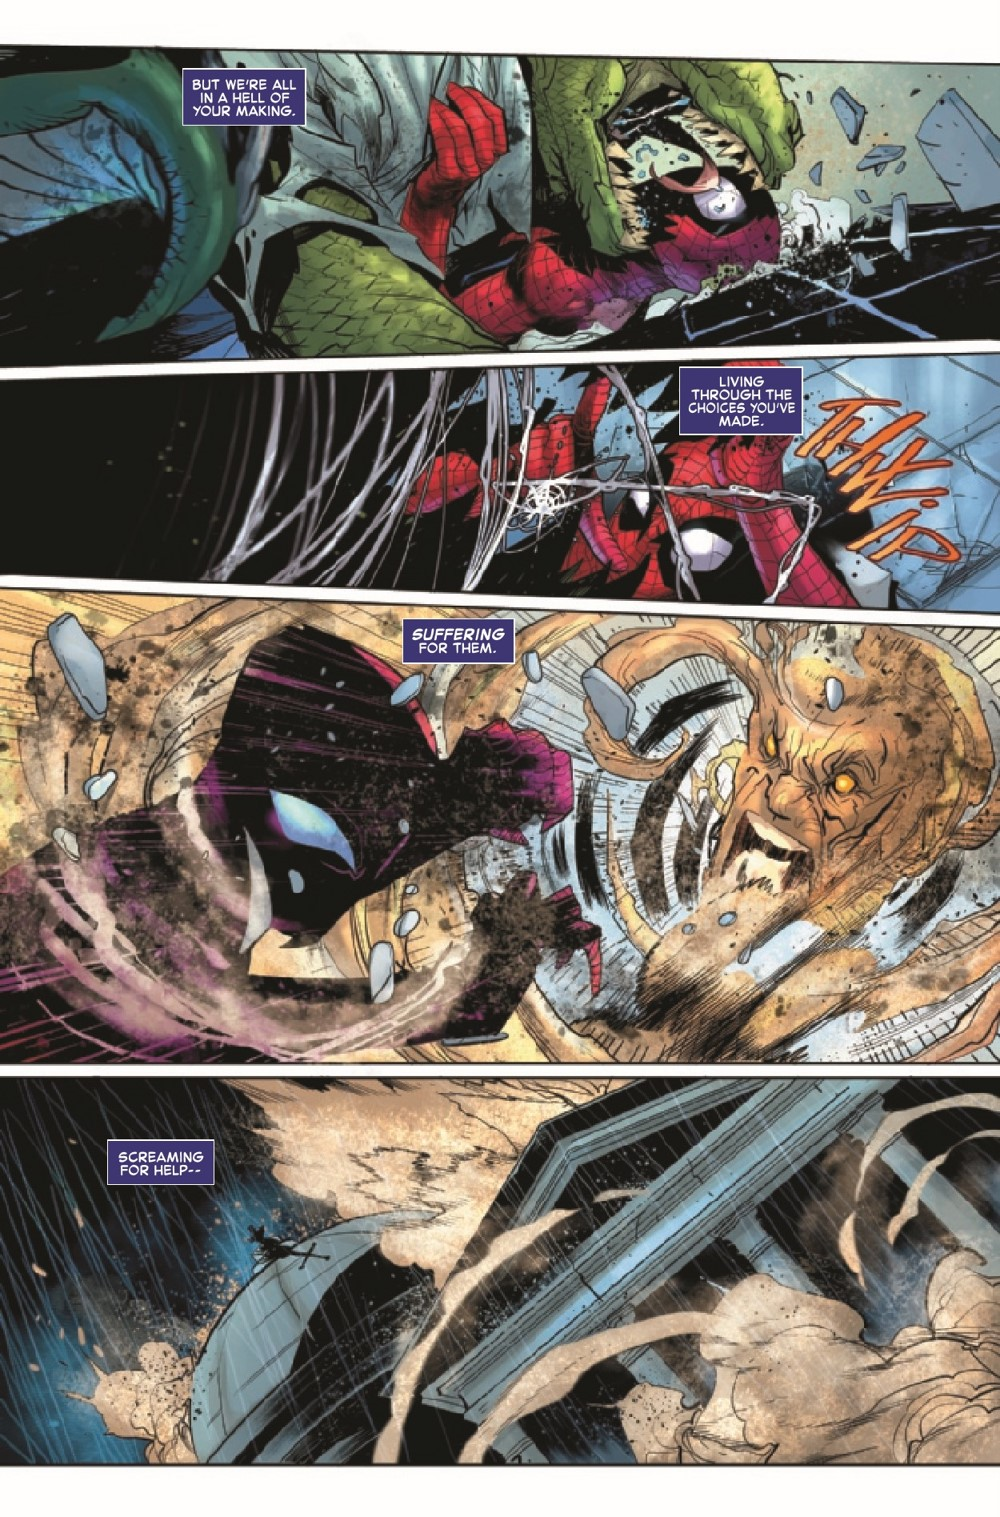 ASM2018071_Preview-5 ComicList Previews: AMAZING SPIDER-MAN #71